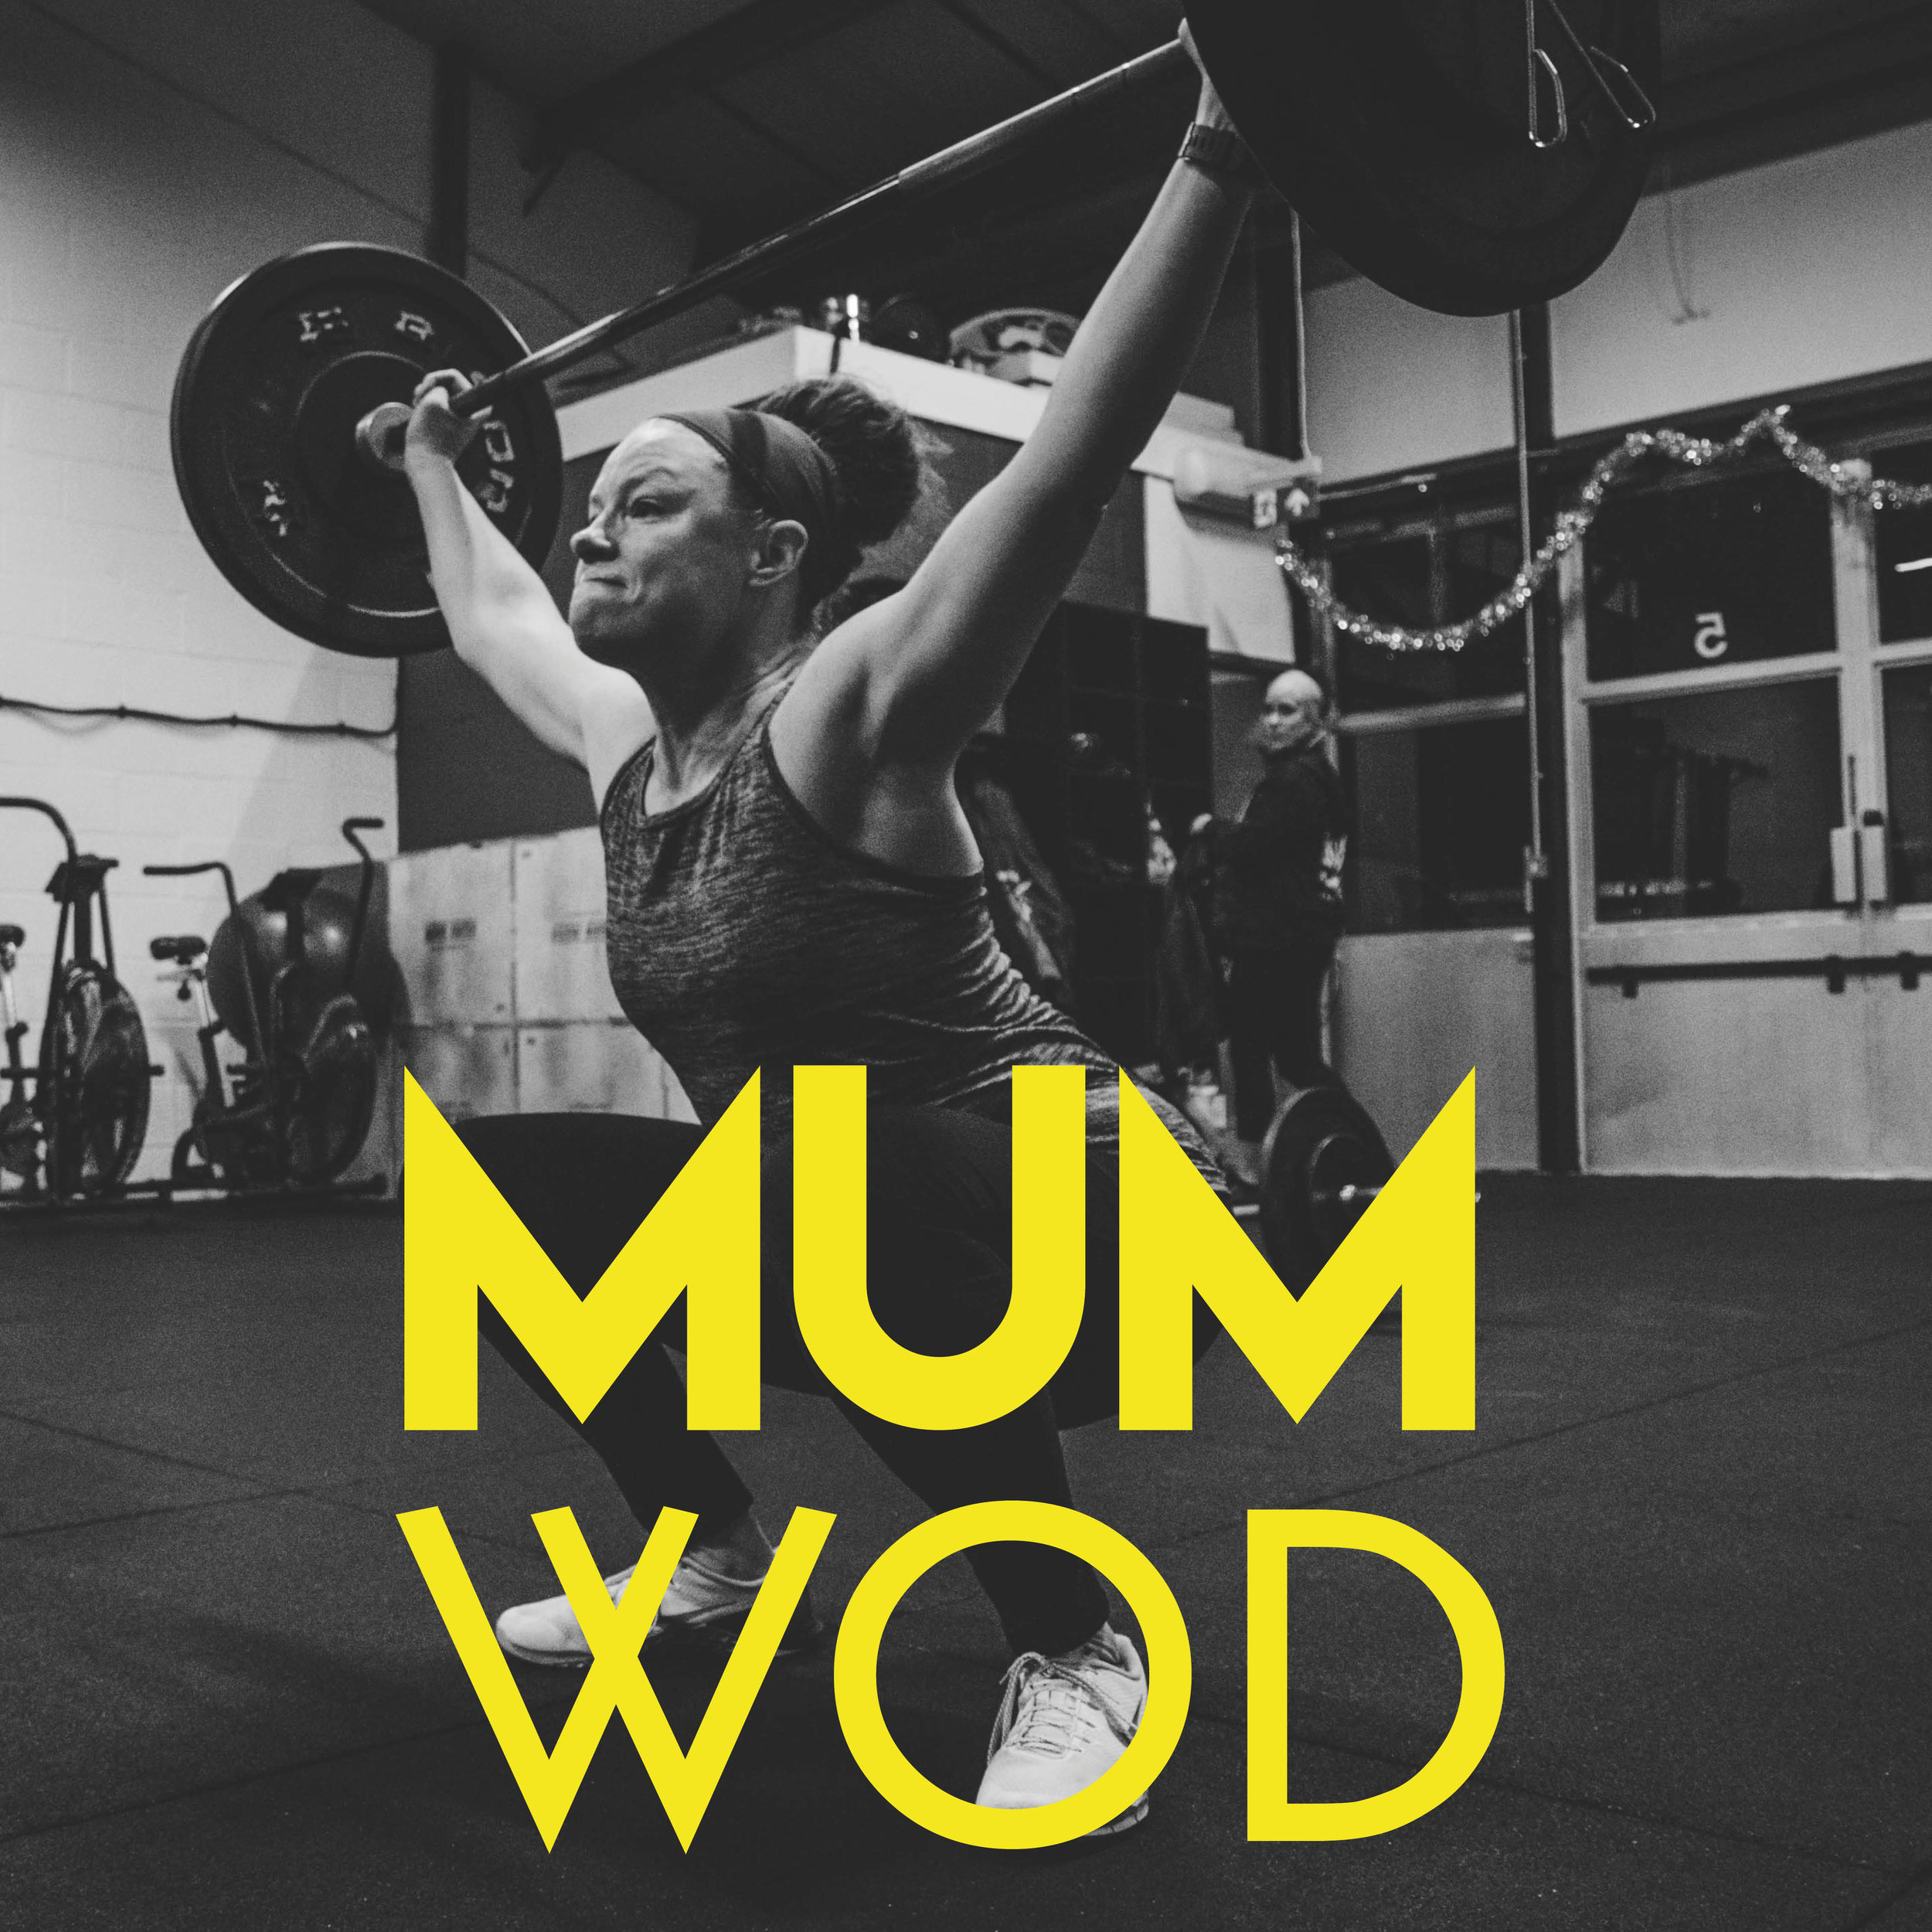 Wishing a very happy Mother's Day to all the mums of CrossFit 1864!